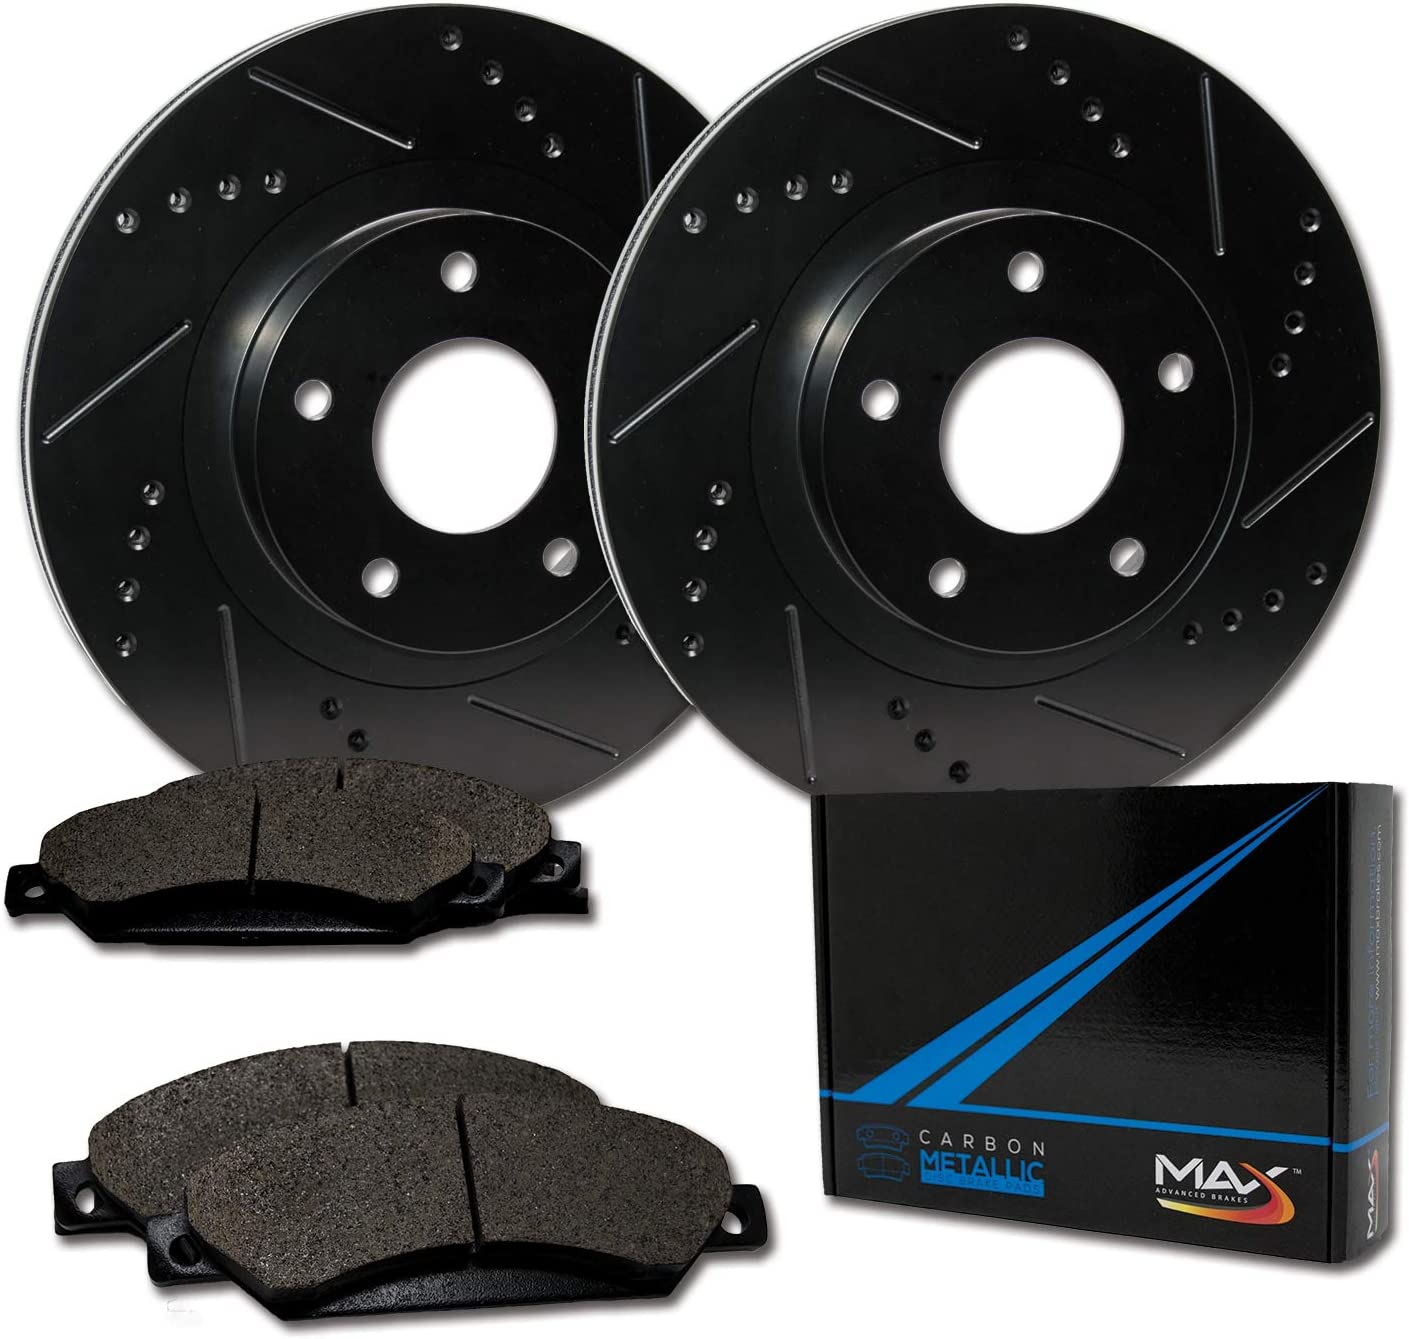 TA114981-1 Max Brakes Front Elite E-Coated XDS Rotors and Metallic Pads Brake Kit